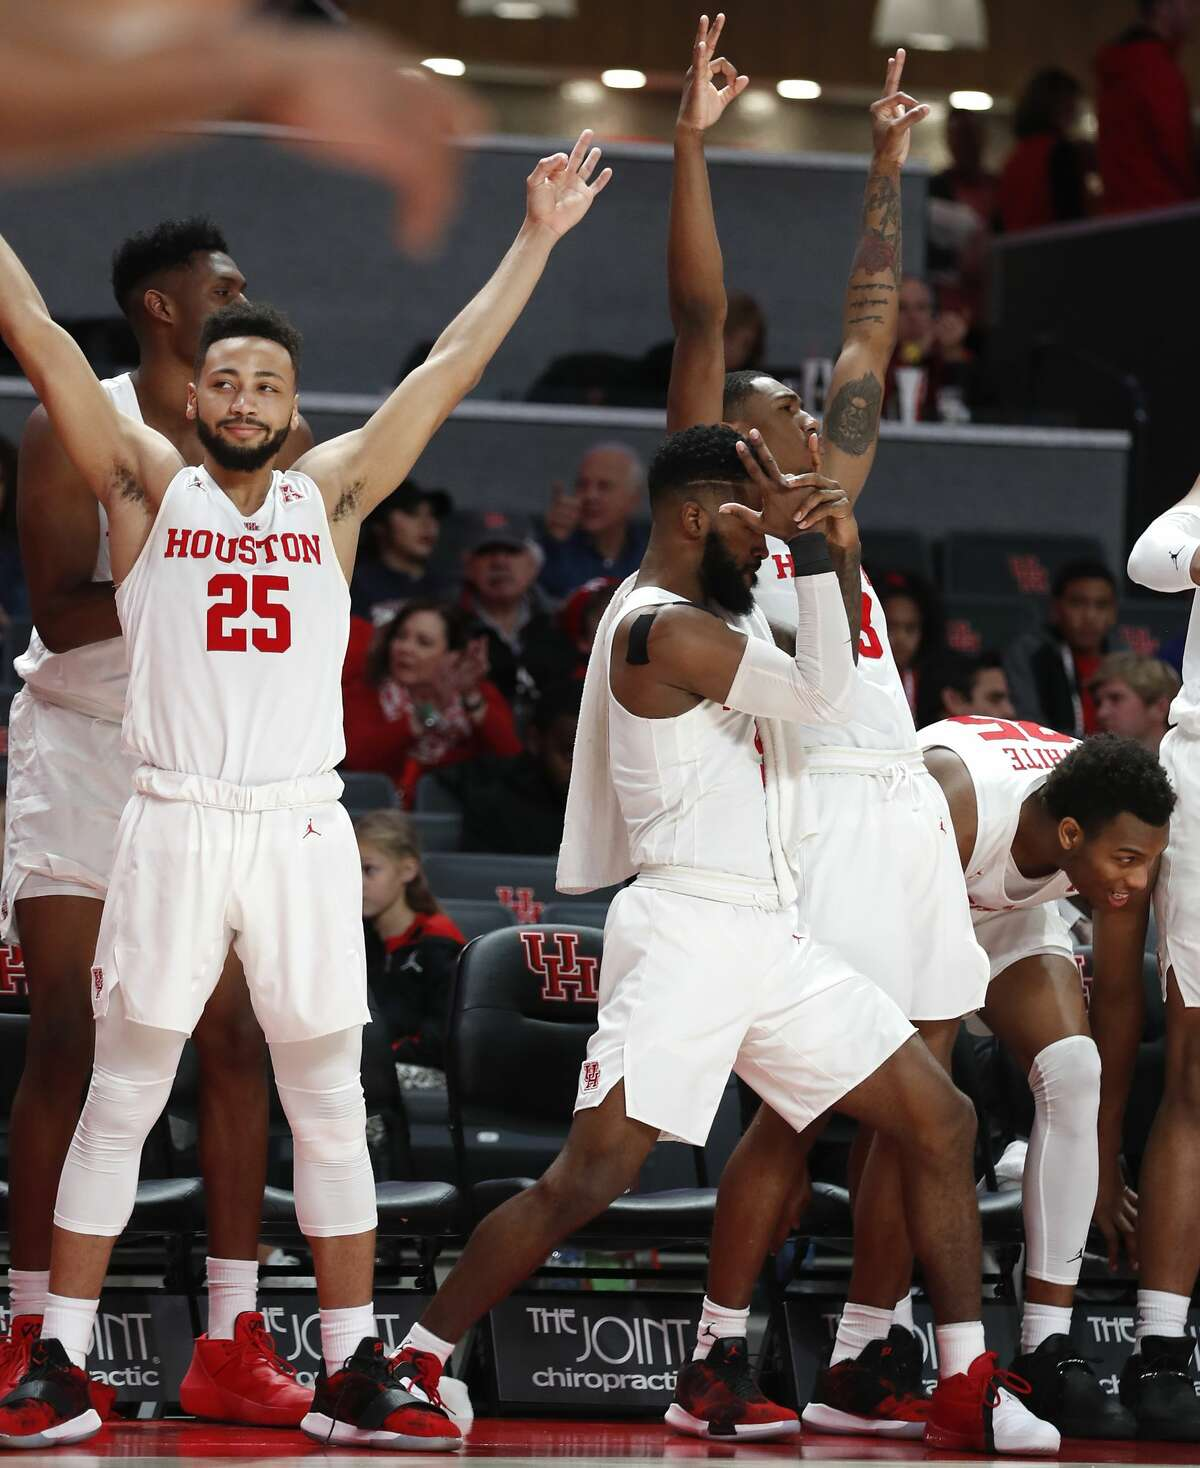 The Houston bench celebrates a 3-pointer made by the Cougars during the second half on a NCAA basketball game against East Carolina at Fertitta Center on Wednesday, Jan. 23, 2019, in Houston. The Cougars won 94-50.